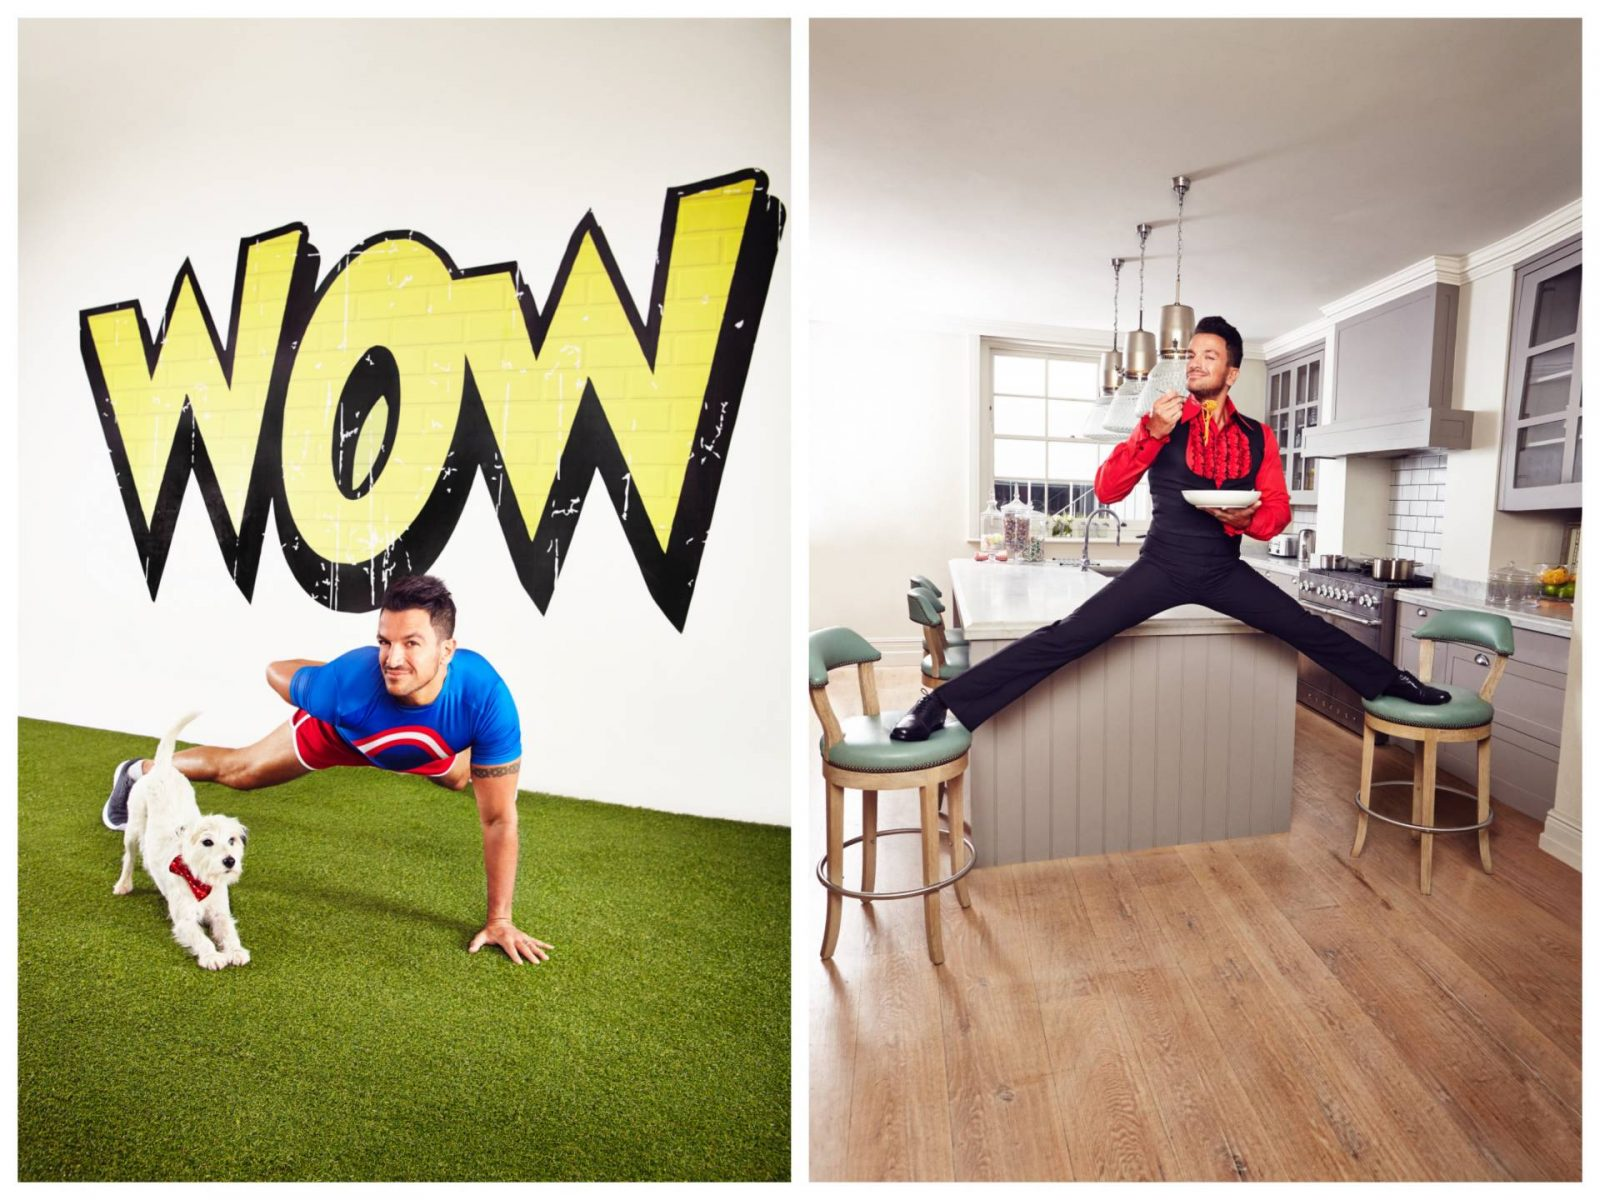 What's your super power? Come and share yours to be in with a chance to win a gadget bundle worth £25,000